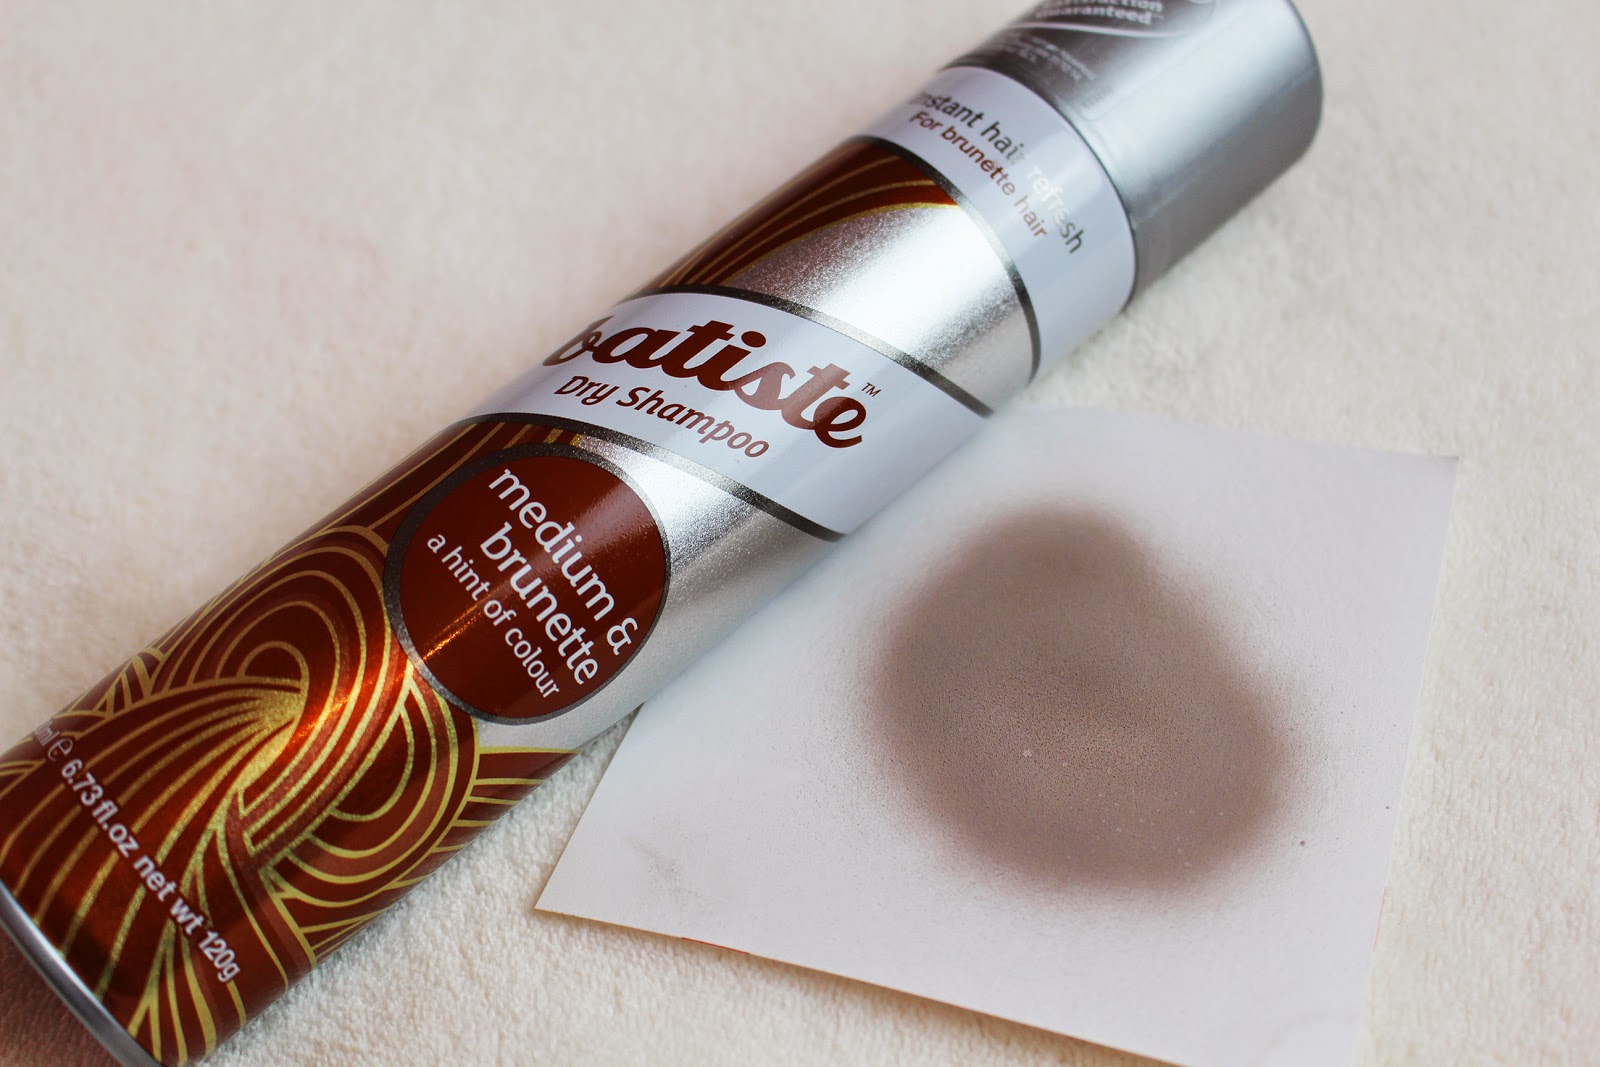 Batiste dry shampoo Medium and Brunette